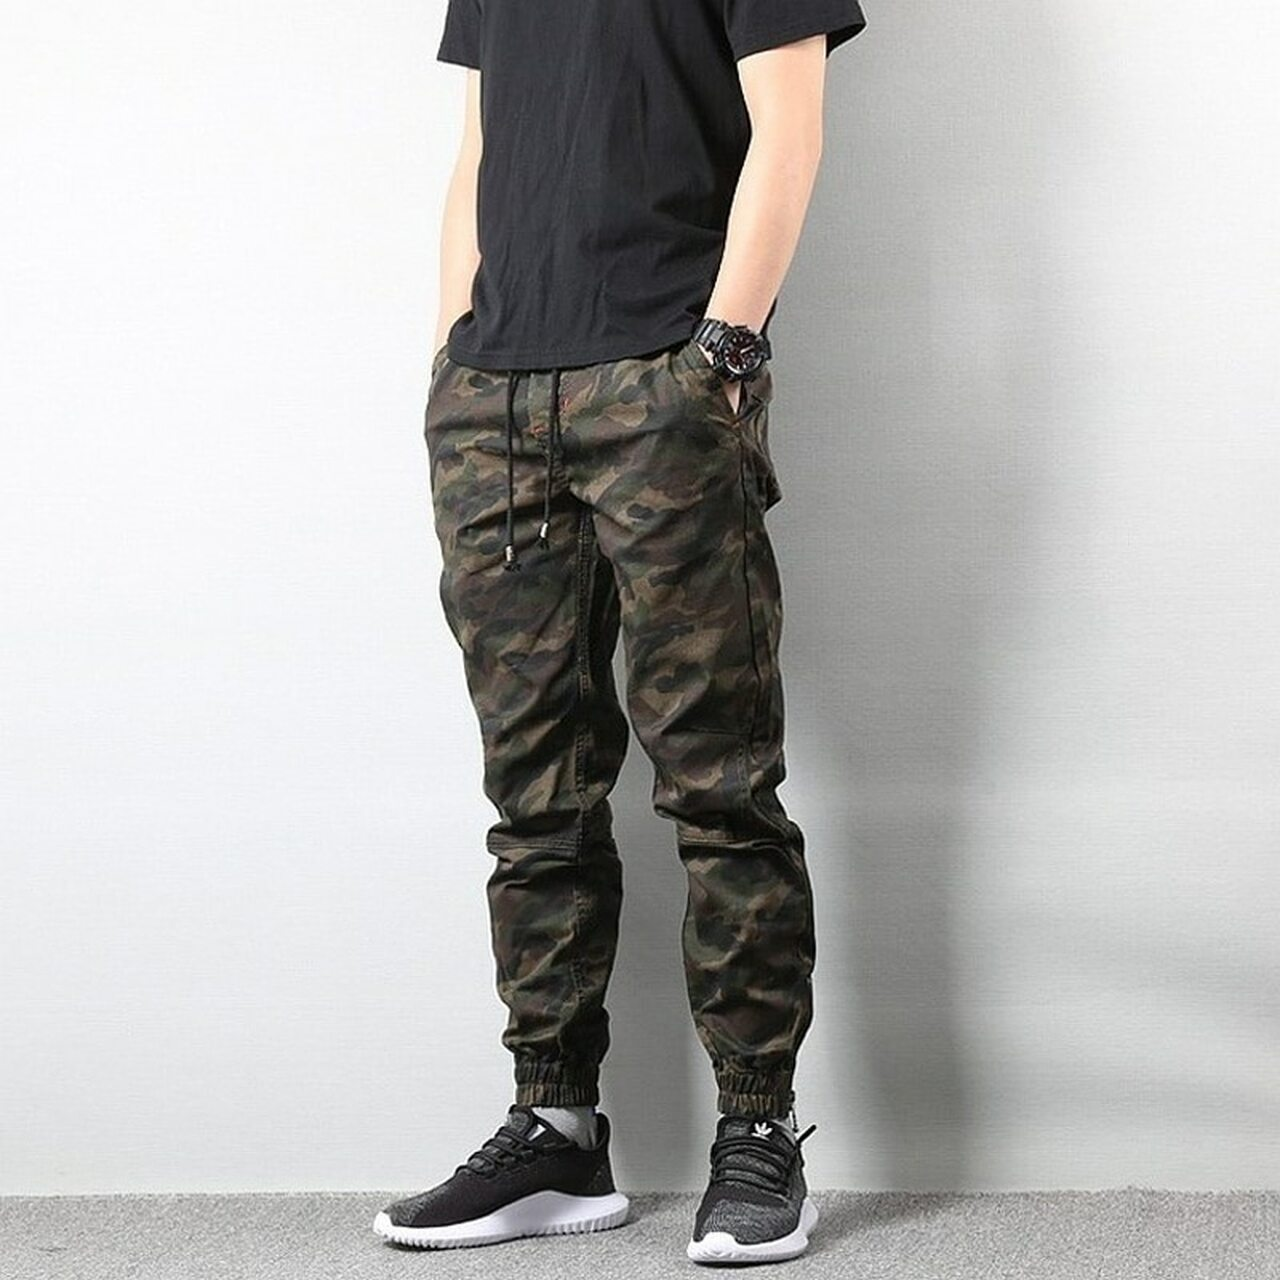 85cd3316efb07d American Street Style Fashion Men's Jeans Jogger Pants Camouflage Cargo  Pants Men Military Army Pants Homme ...